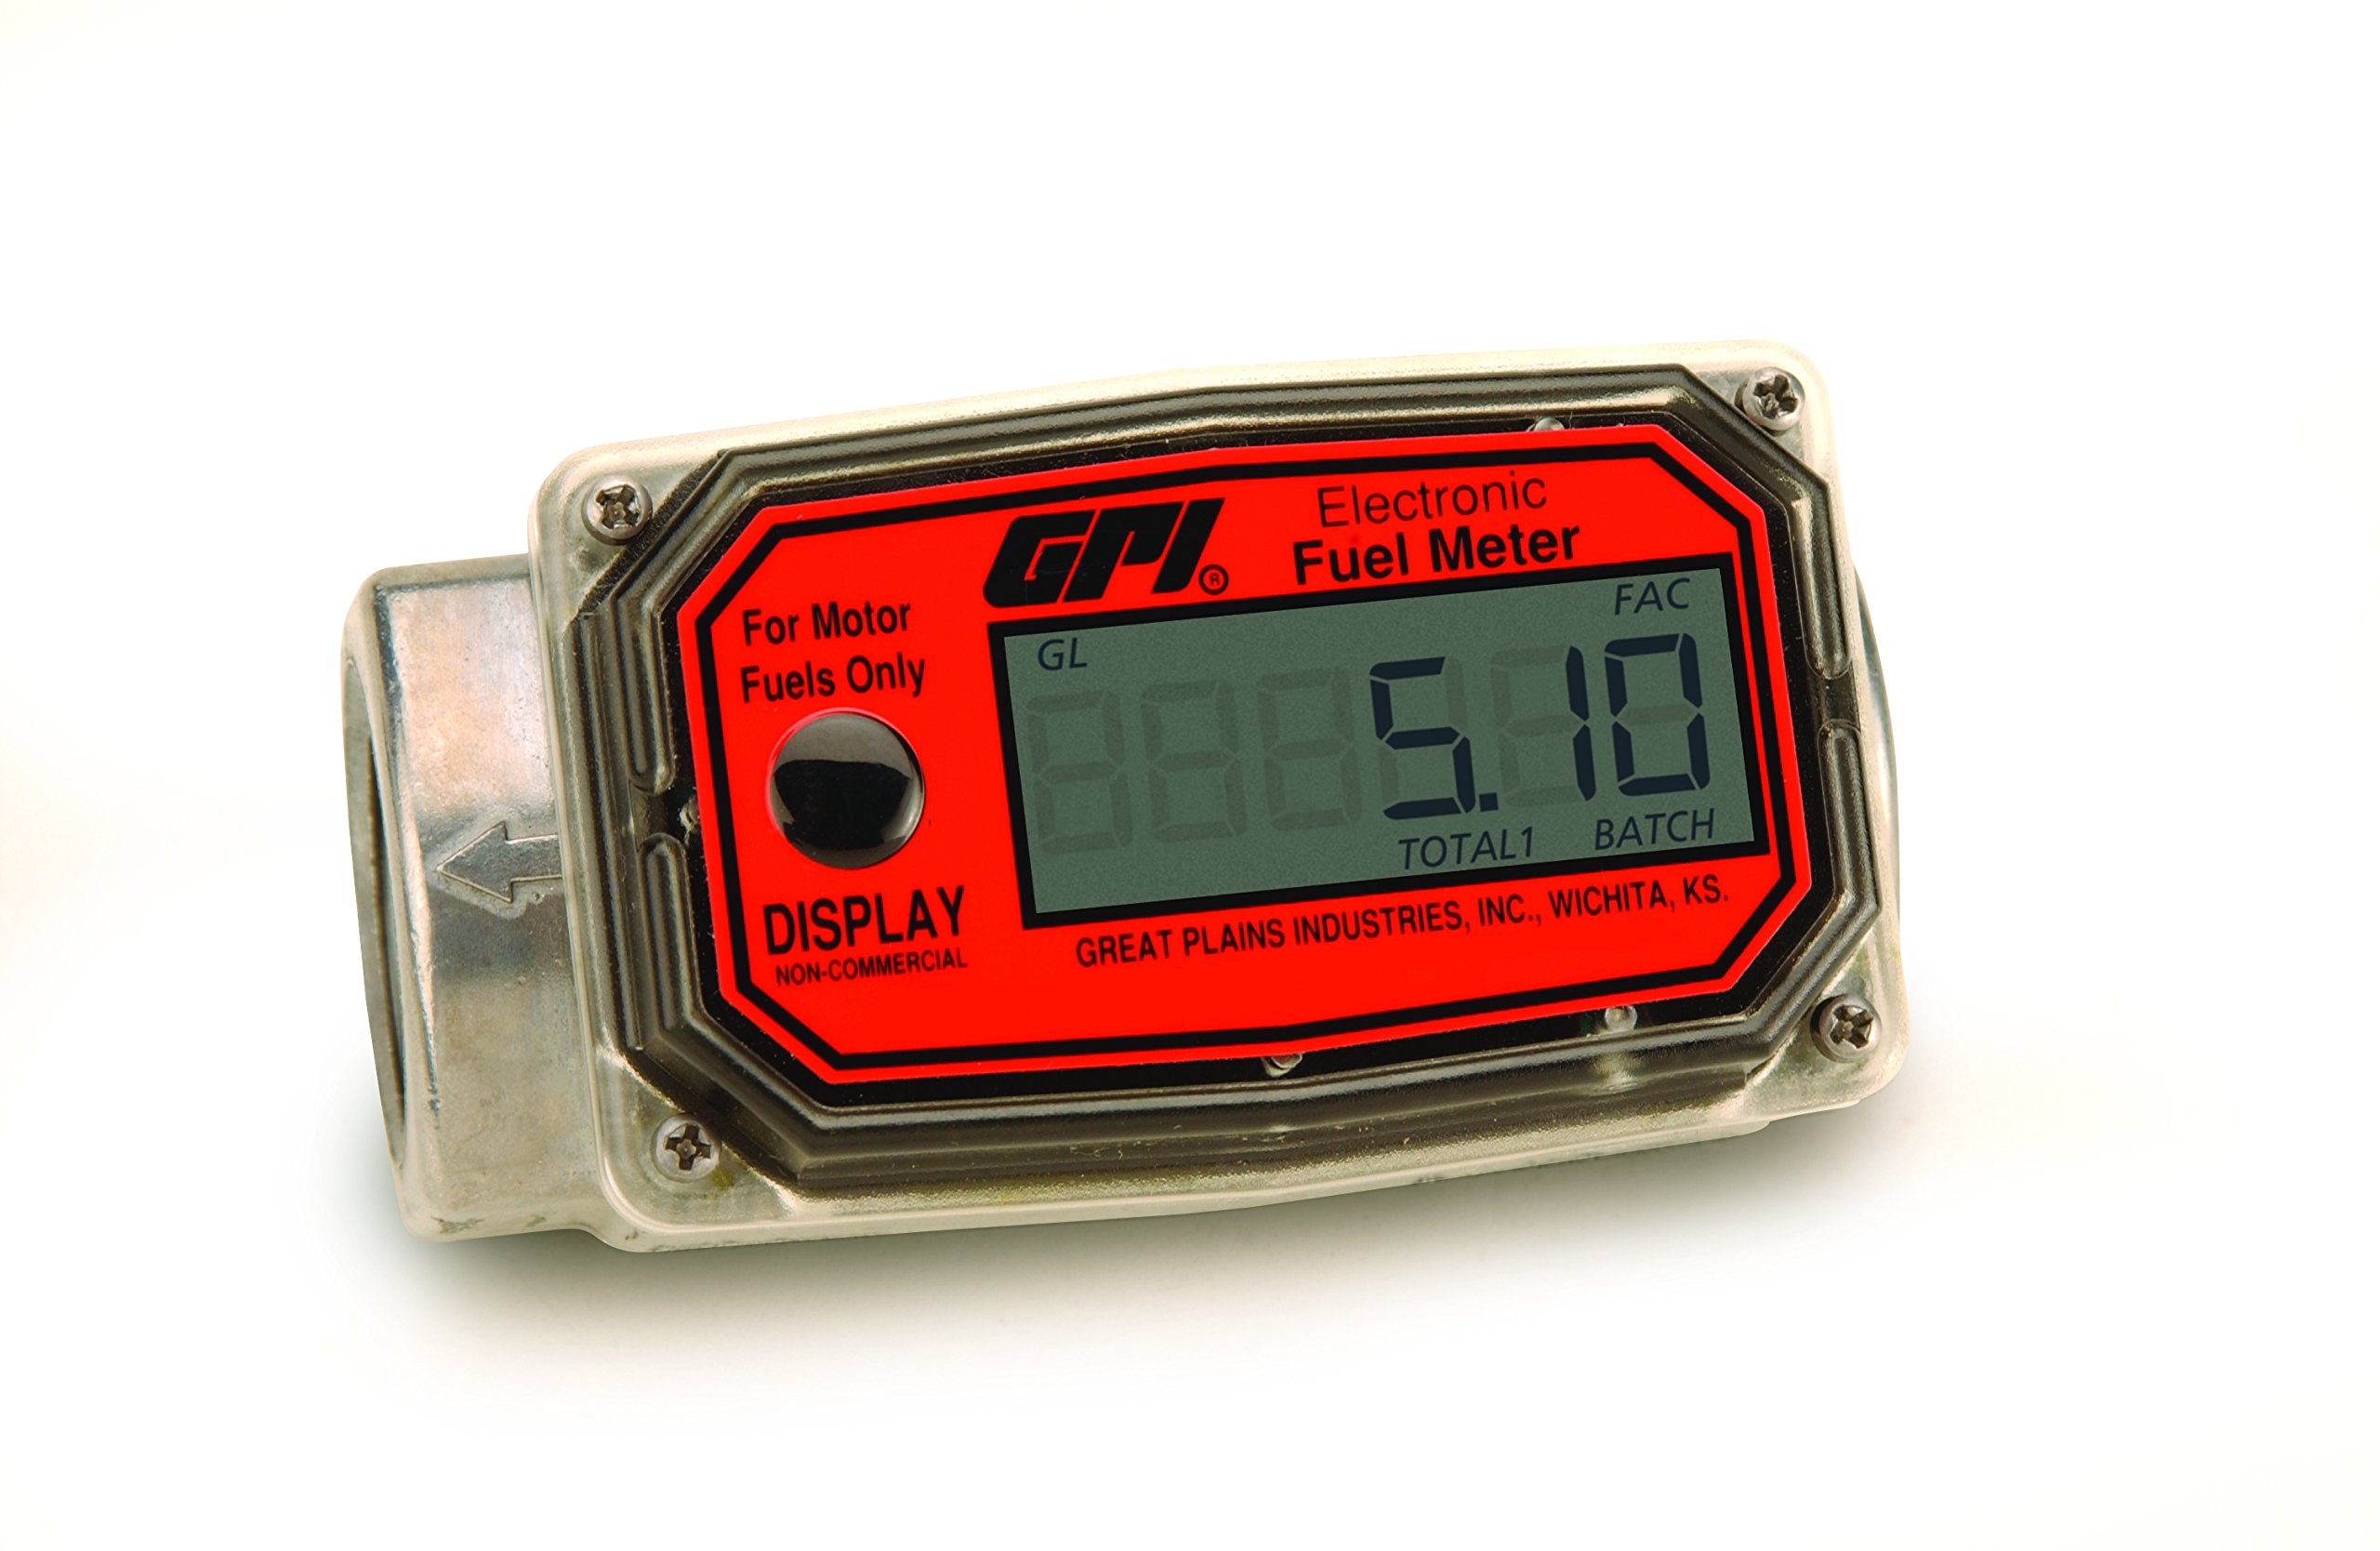 GPI 113255-1, 01A31GM Aluminum Turbine Fuel Flowmeter with Digital LCD Display, 3-30 GPM, 1-Inch FNPT Inlet/Outlet, 0.75-Inch Reducer Bushings